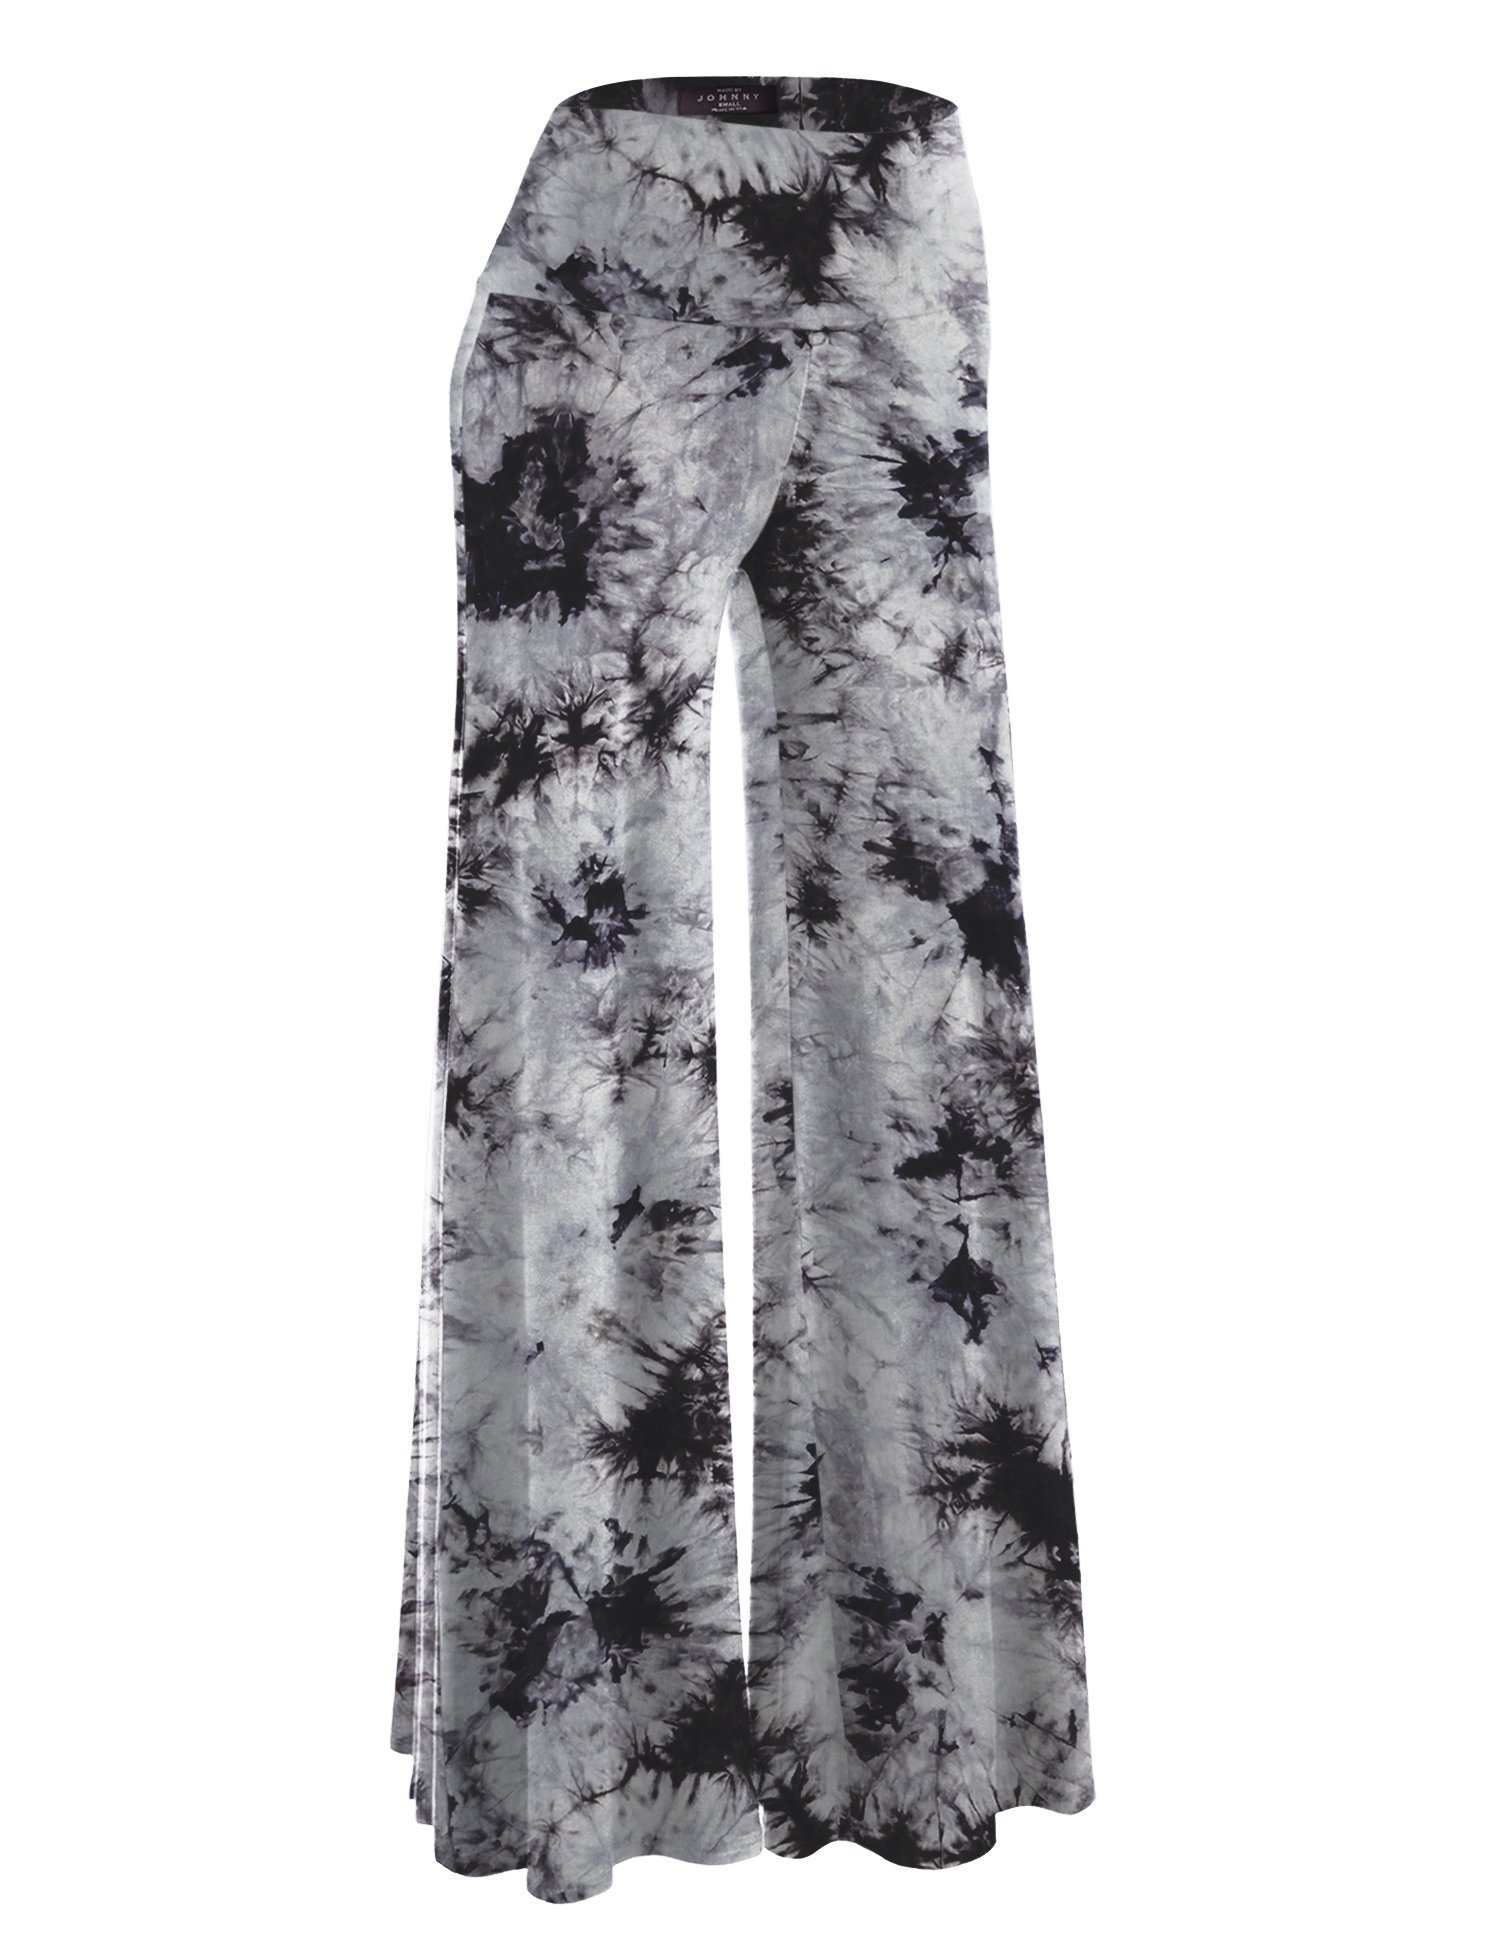 Made By Johnny WB1060 Womens Chic Tie Dye Palazzo Pants L White_Black